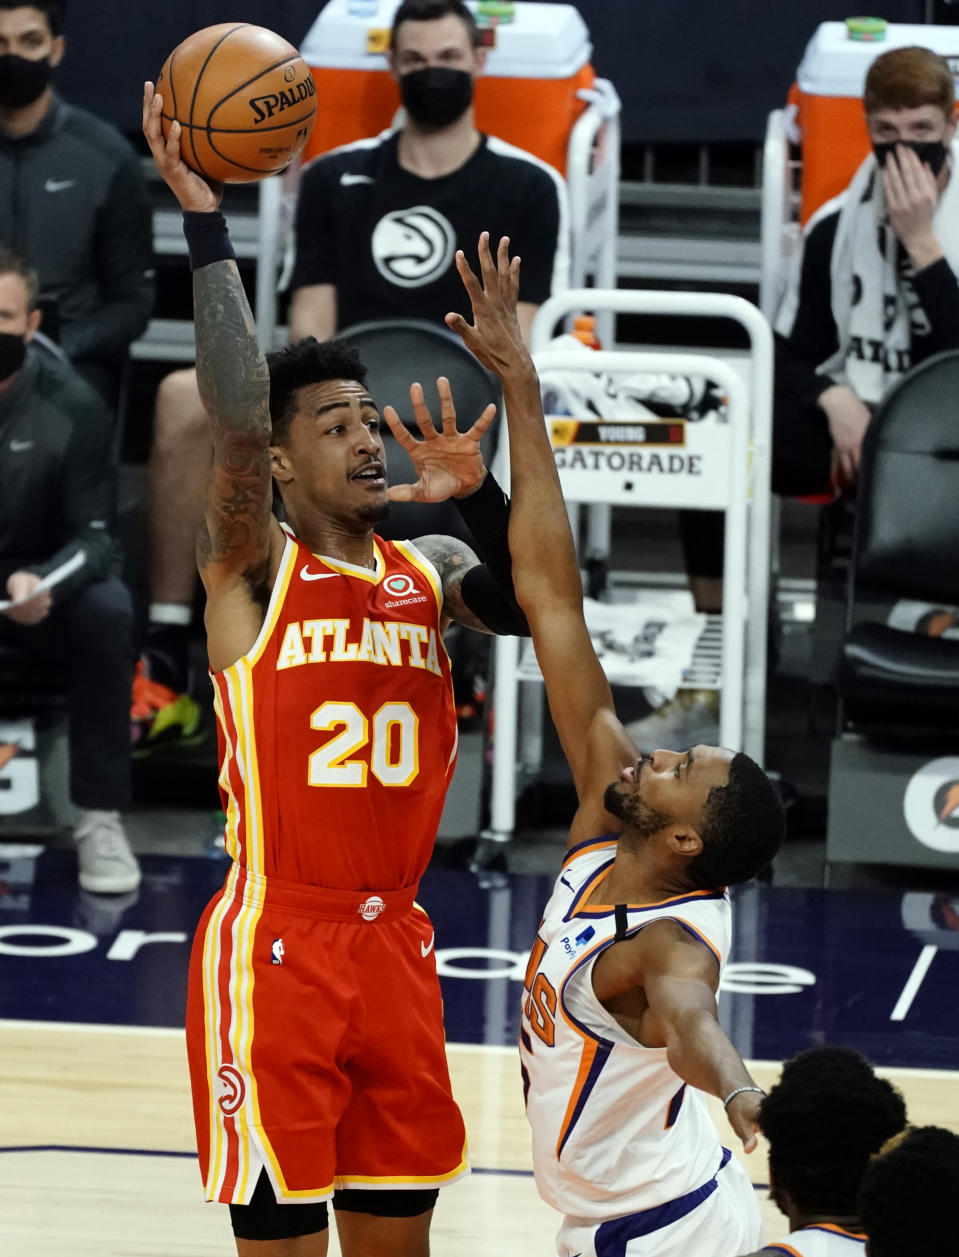 Atlanta Hawks forward John Collins (20) shoots over Phoenix Suns forward Mikal Bridges during the first half of an NBA basketball game Tuesday, March 30, 2021, in Phoenix. (AP Photo/Rick Scuteri)